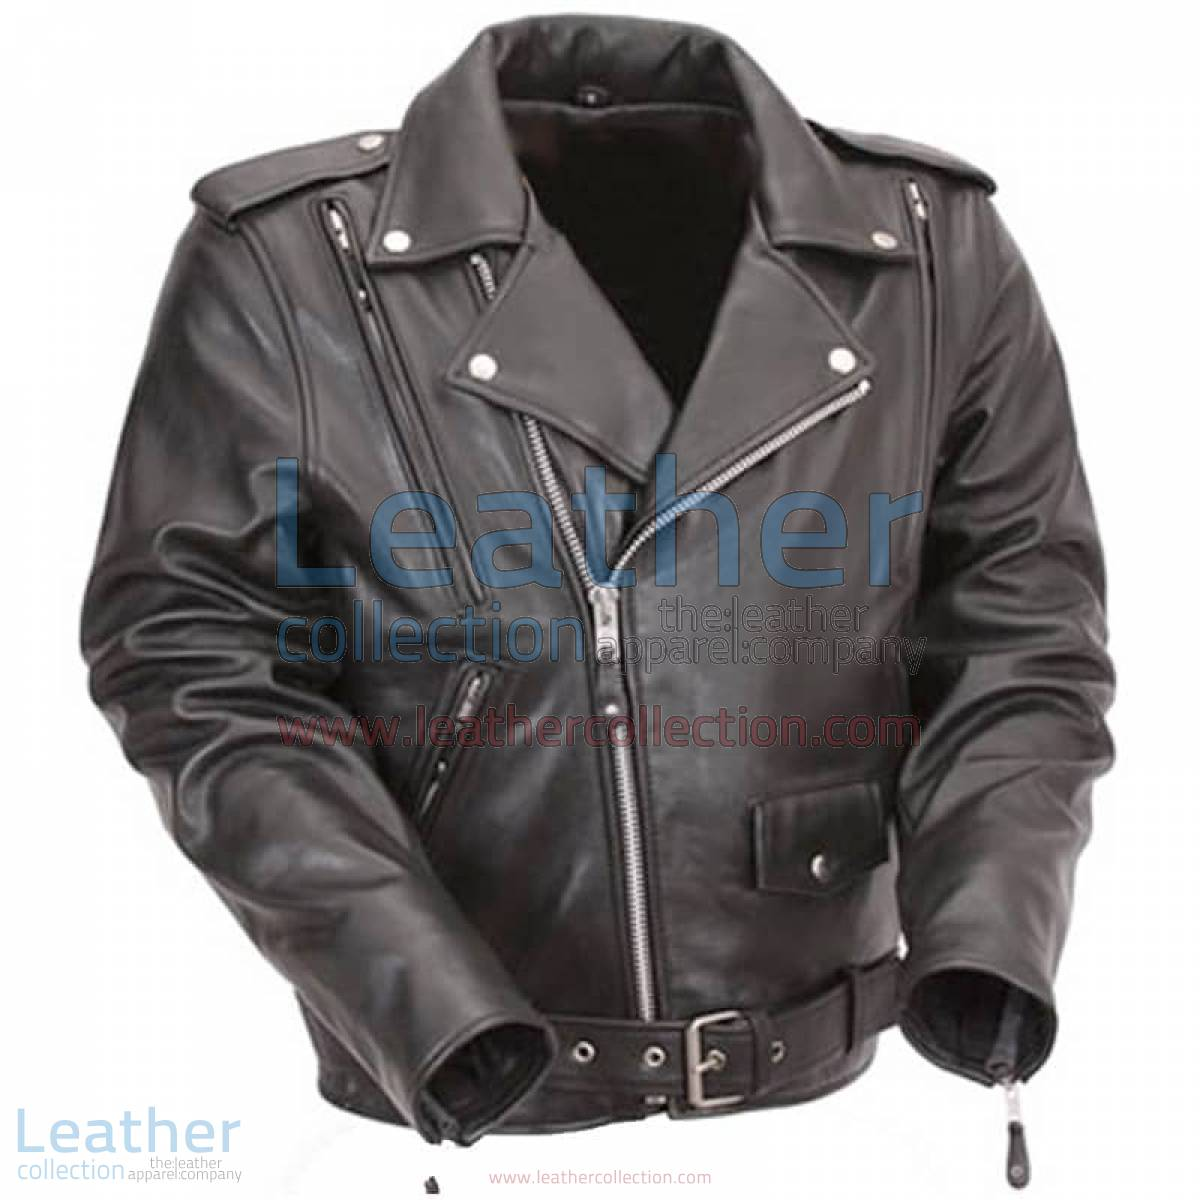 Black Leather Motorcycle Jacket with Exclusive Built-in Back Support   black motorcycle jacket,leather motorcycle jacket